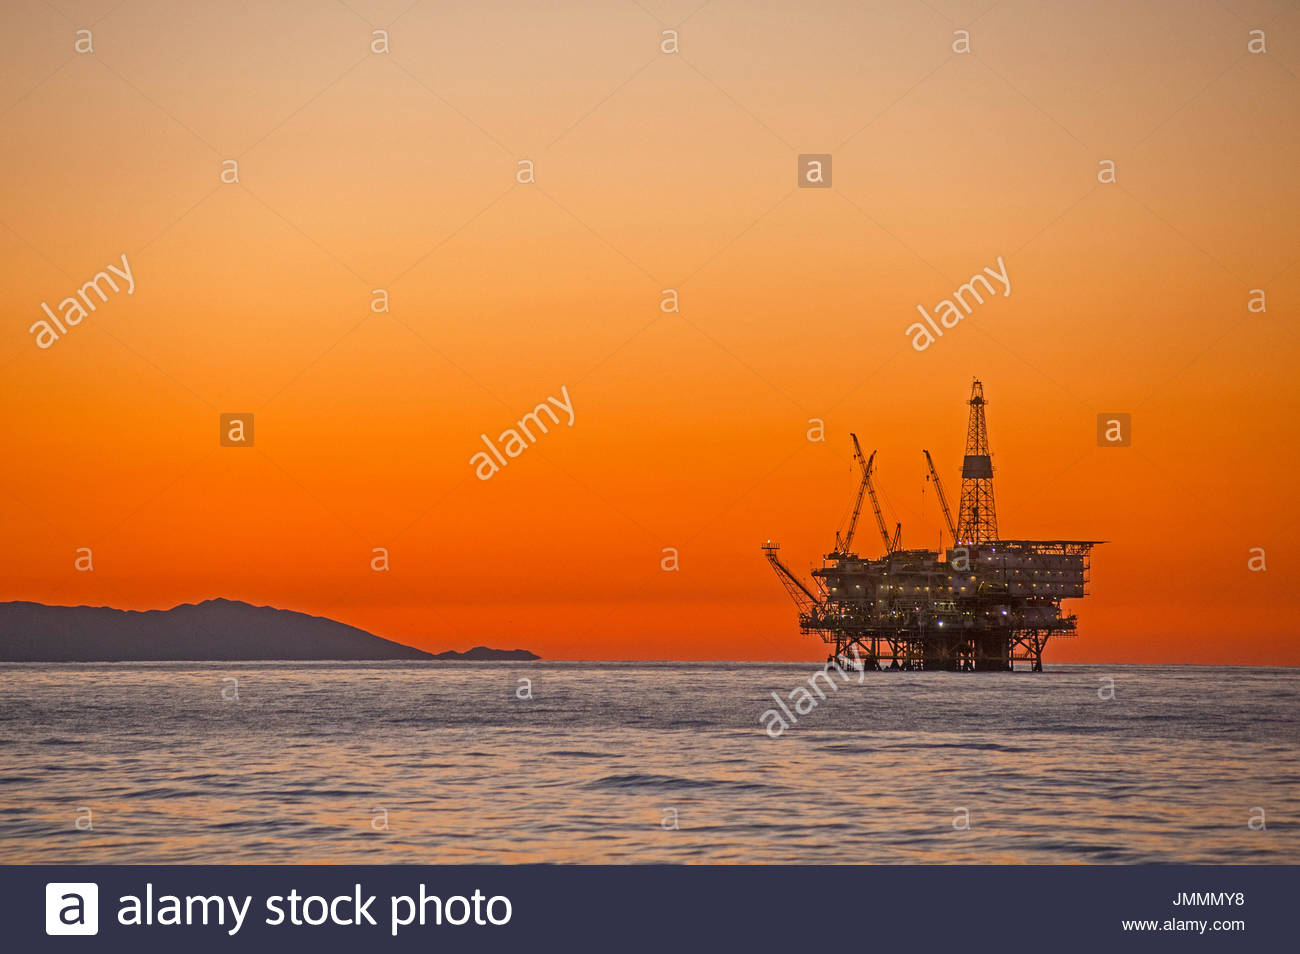 Oil drilling and pumping platforms rise out of the Pacific near Santa Catalina Island. - Stock Image